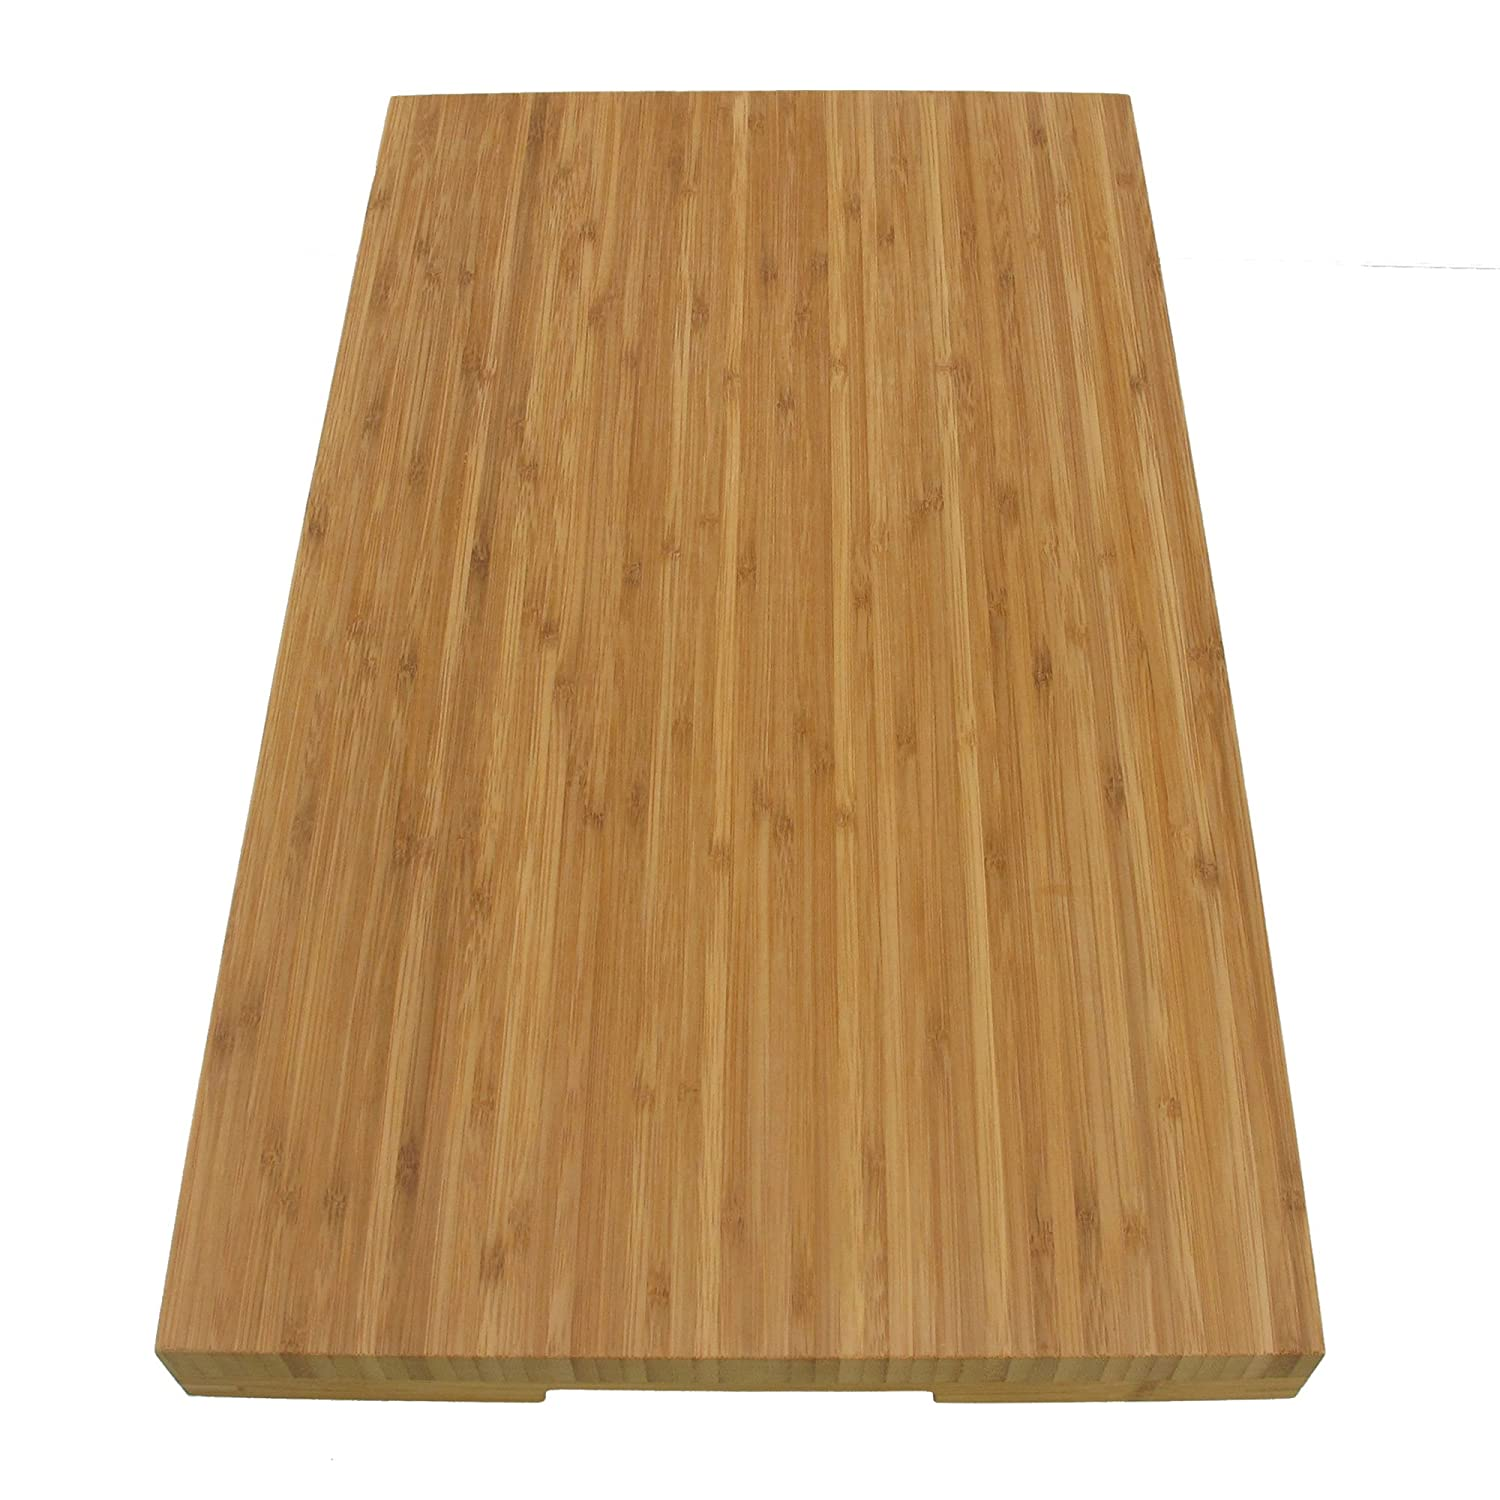 "BambooMN Brand Jenn Air Bamboo Range Burner Cover/Cutting Board, New Vertical Cut, Large (20.5""x12""x1.57"")"